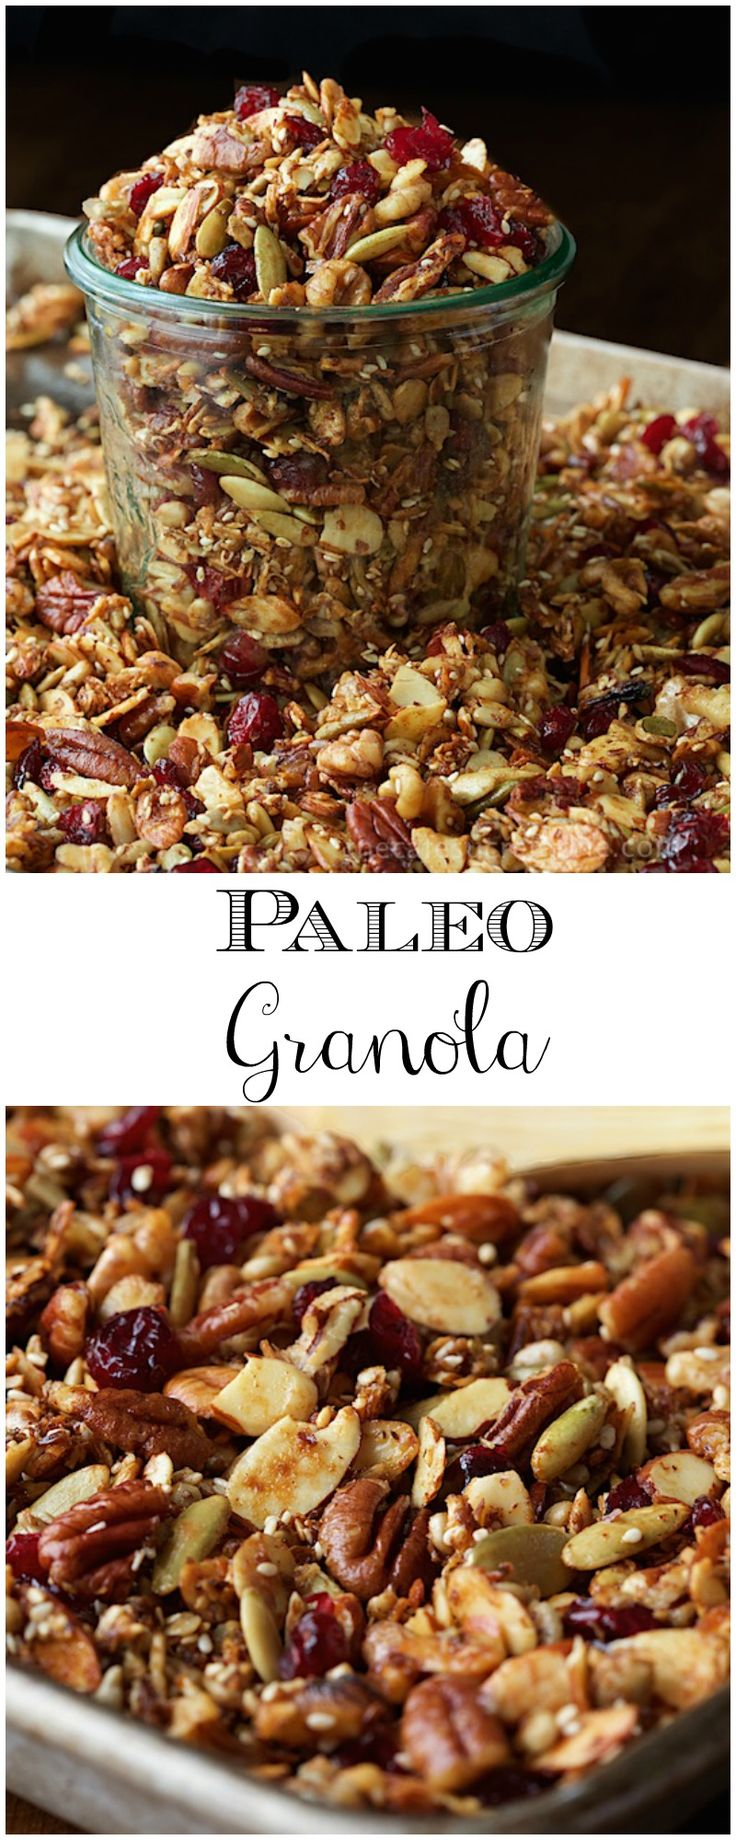 This Paleo Granola is something you have to try, not just for your health, but because, well, it's just so darn good, you won't believe it!